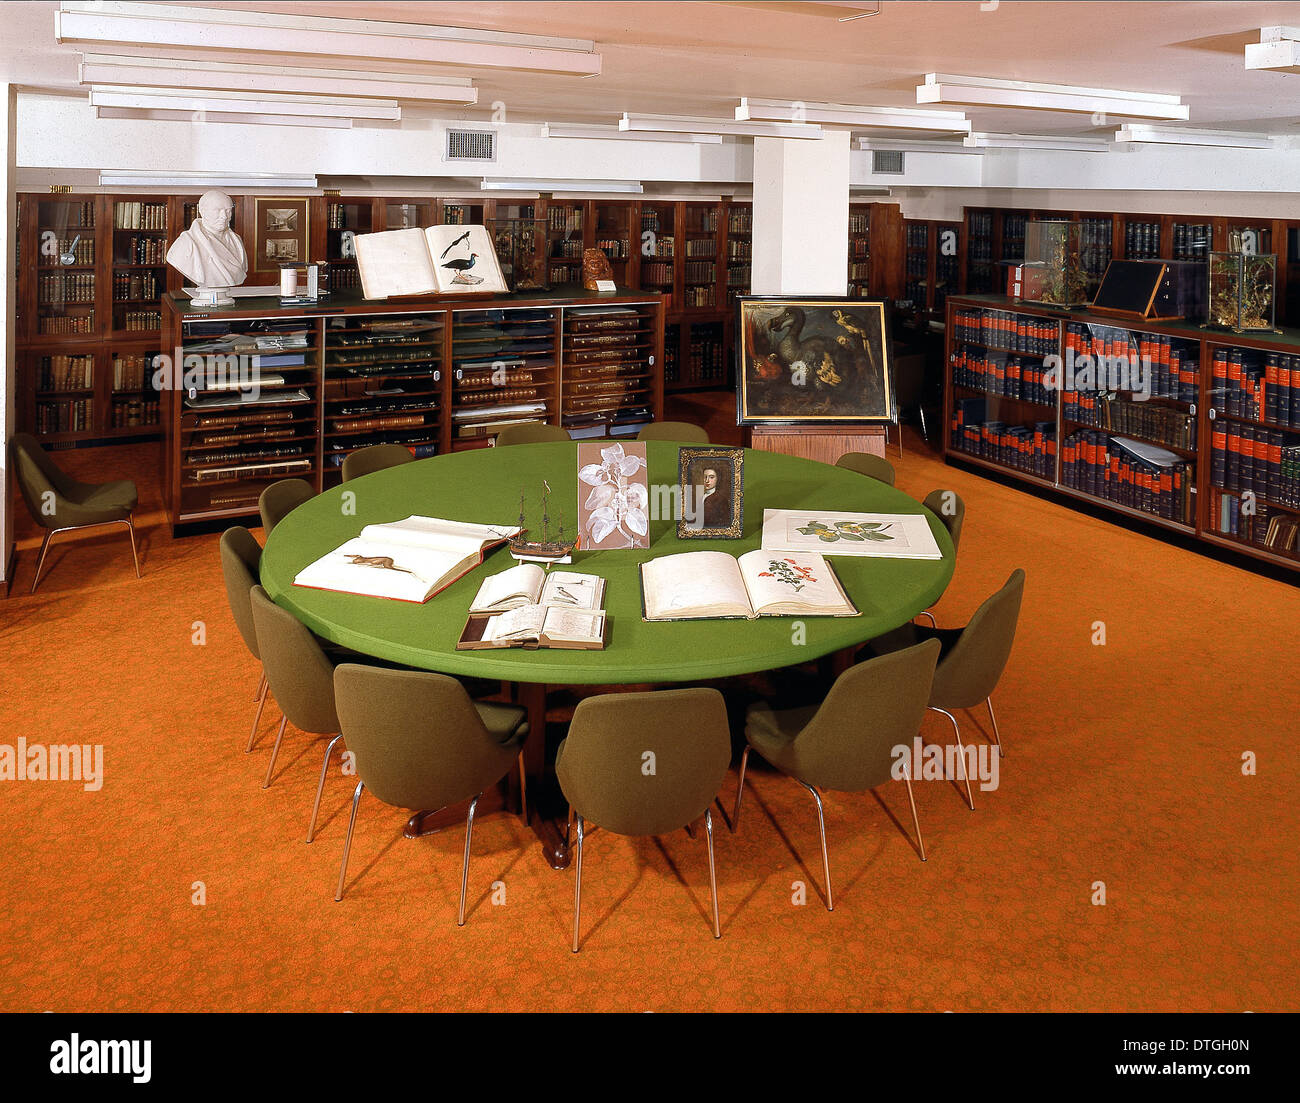 The Rare Book Room at the Natural History Museum, London - Stock Image